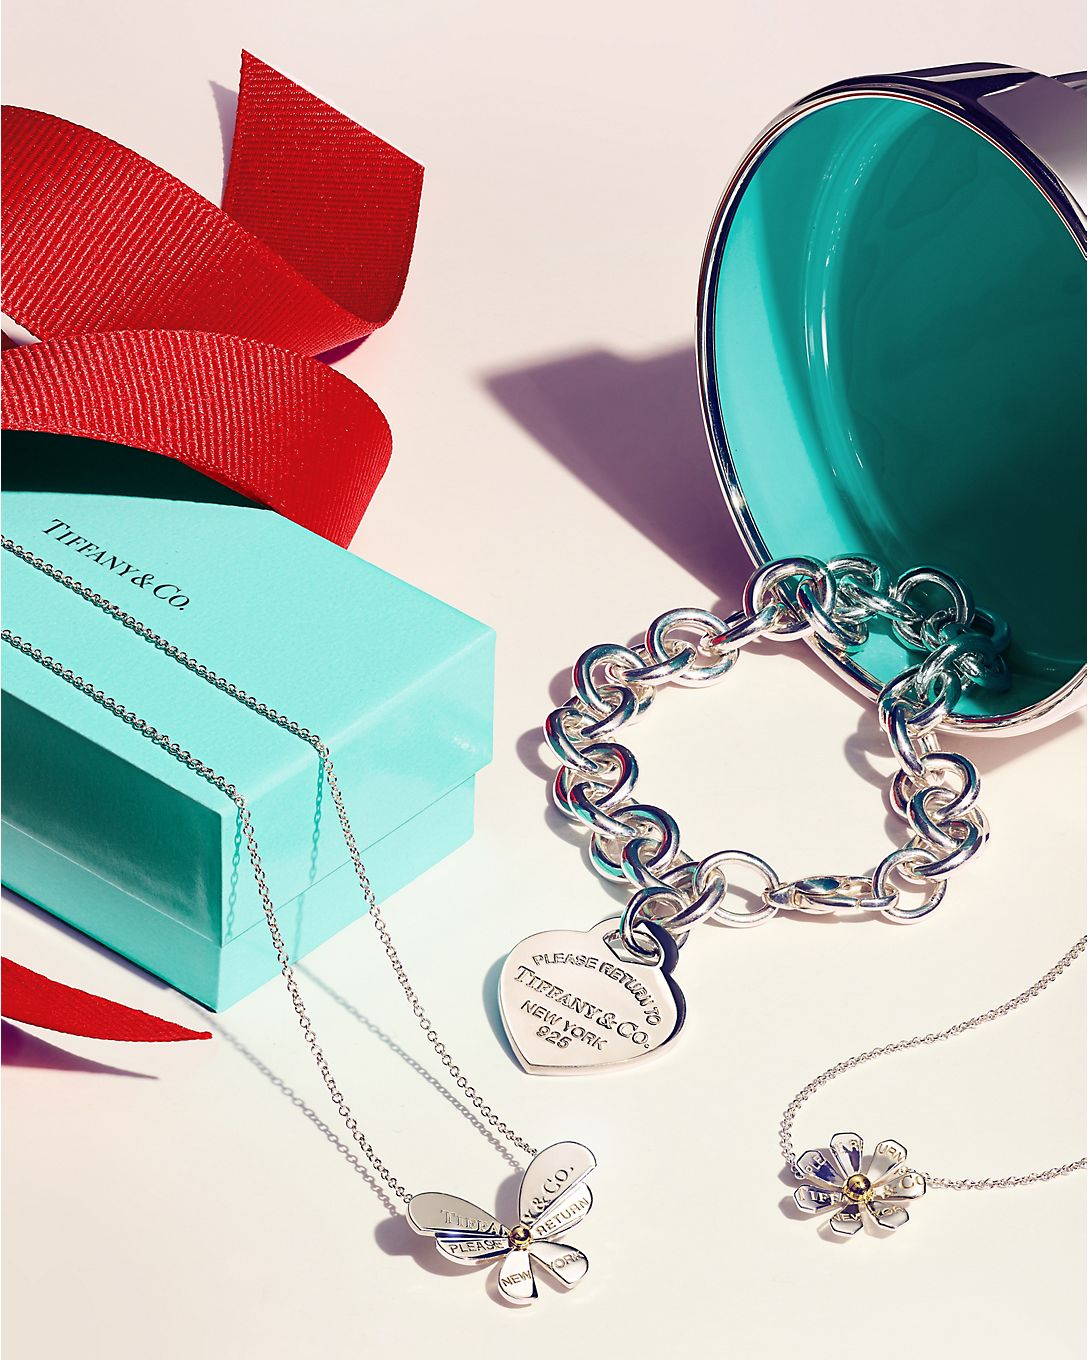 Shop Tiffany & Co. Gifts $500 & Under